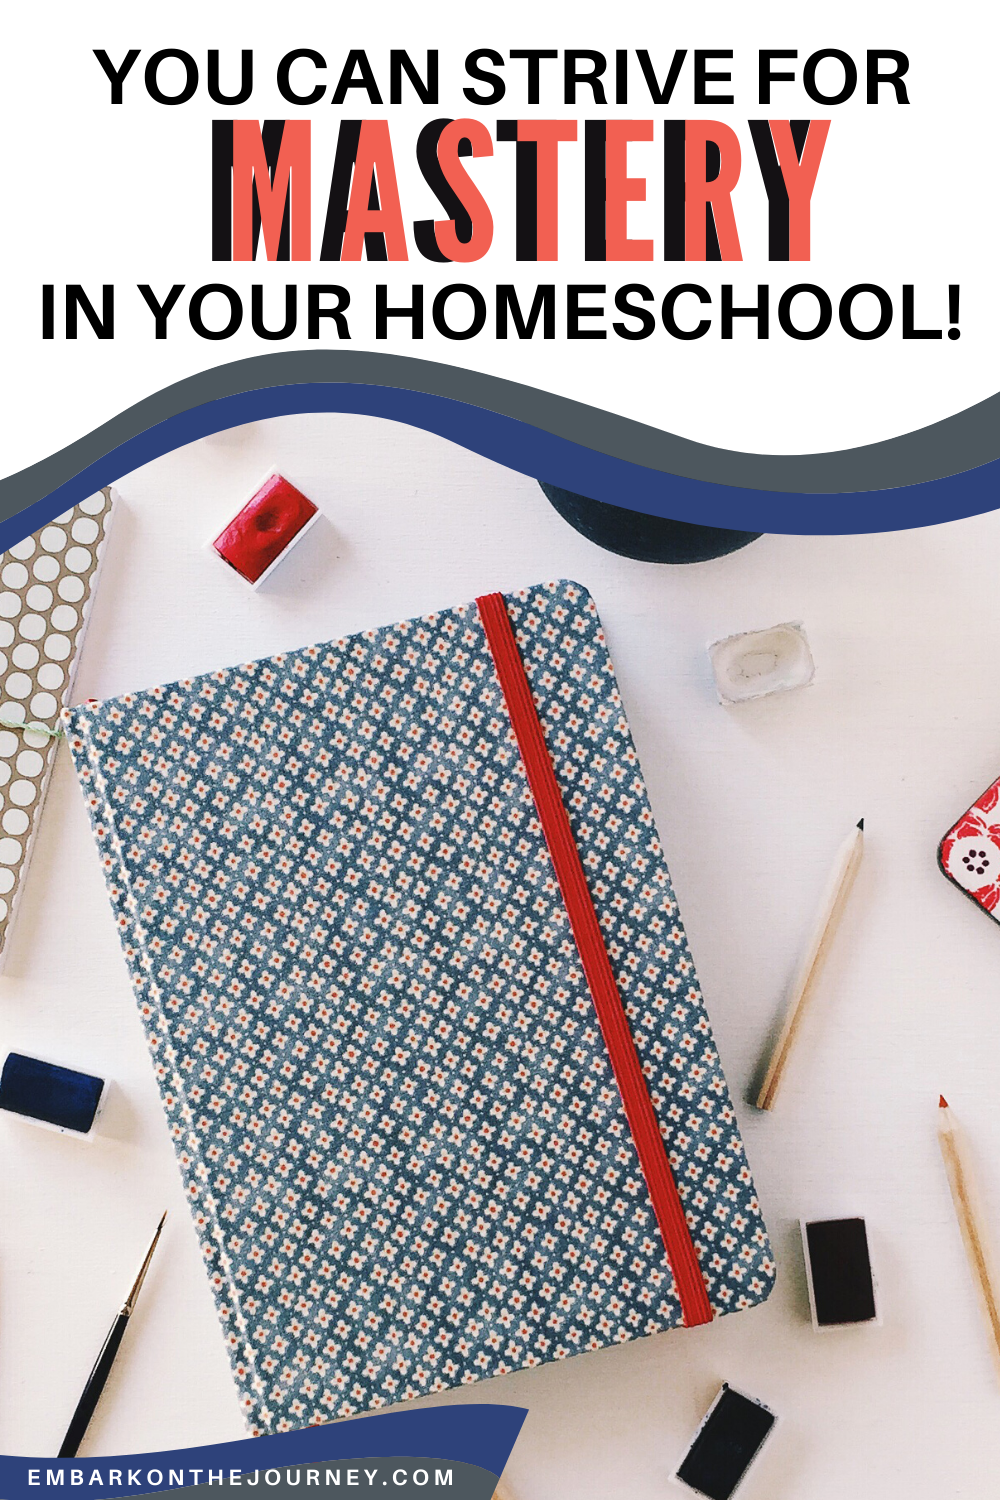 One blessing of homeschooling is the ability to strive for mastery to ensure that my kids are really ready to move on? What does it look like in real life?